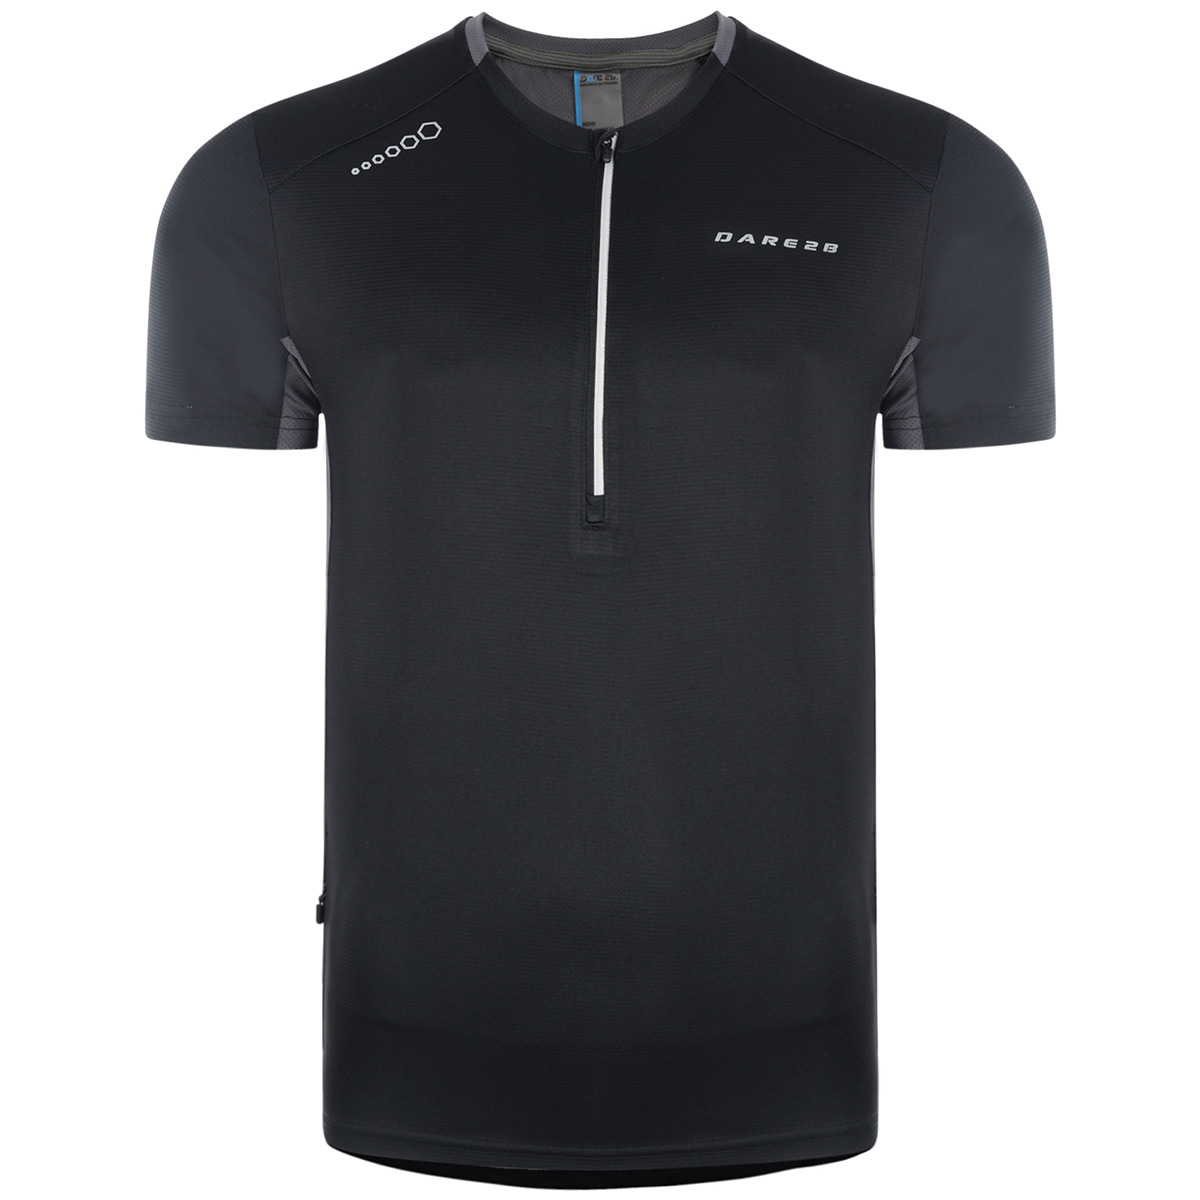 Dare 2b Mens Attest Lightweight 1//2 Zip Reflective Cycle Jersey 52/% OFF RRP